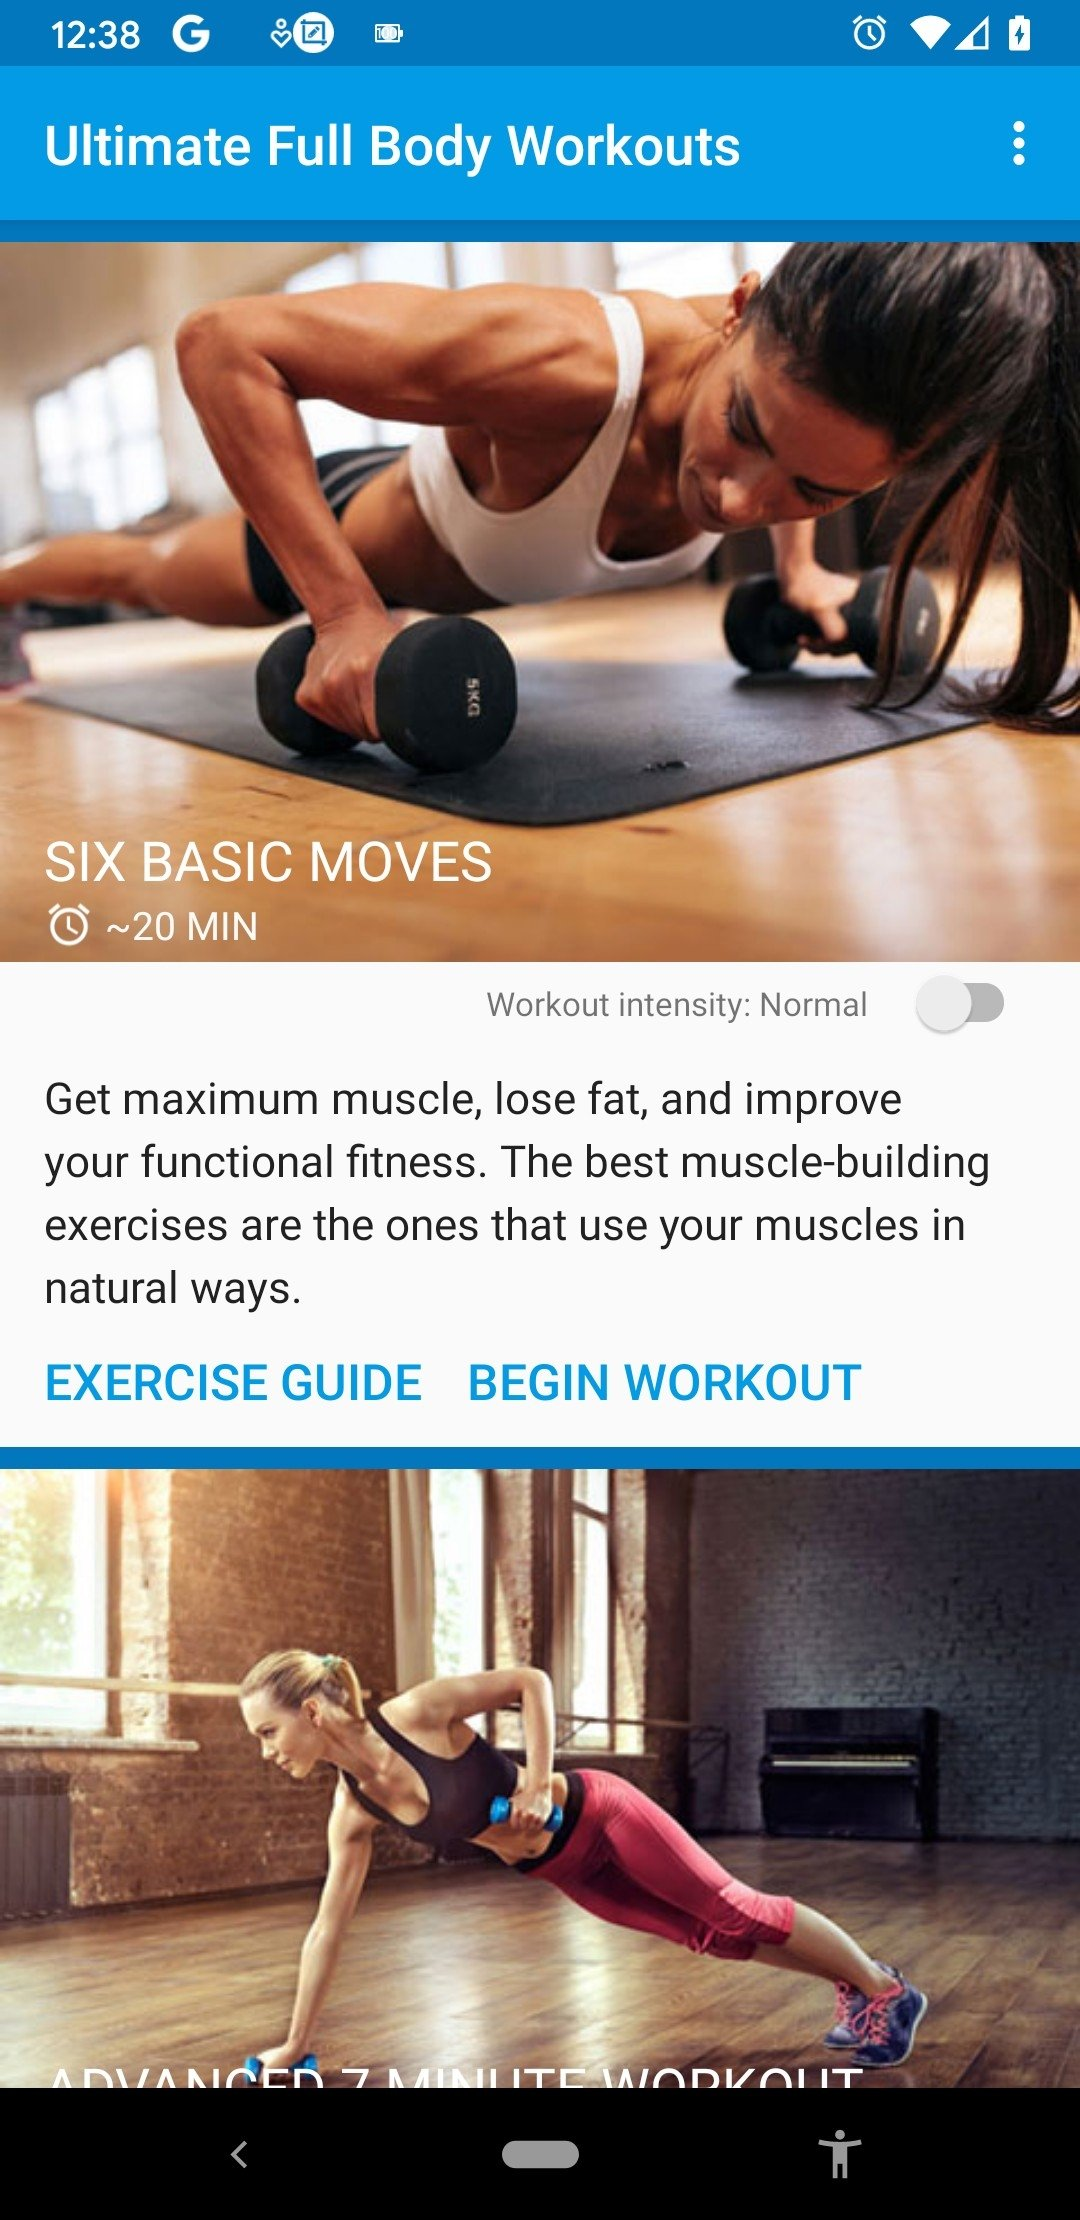 Ultimate Full Body Workouts Android image 7